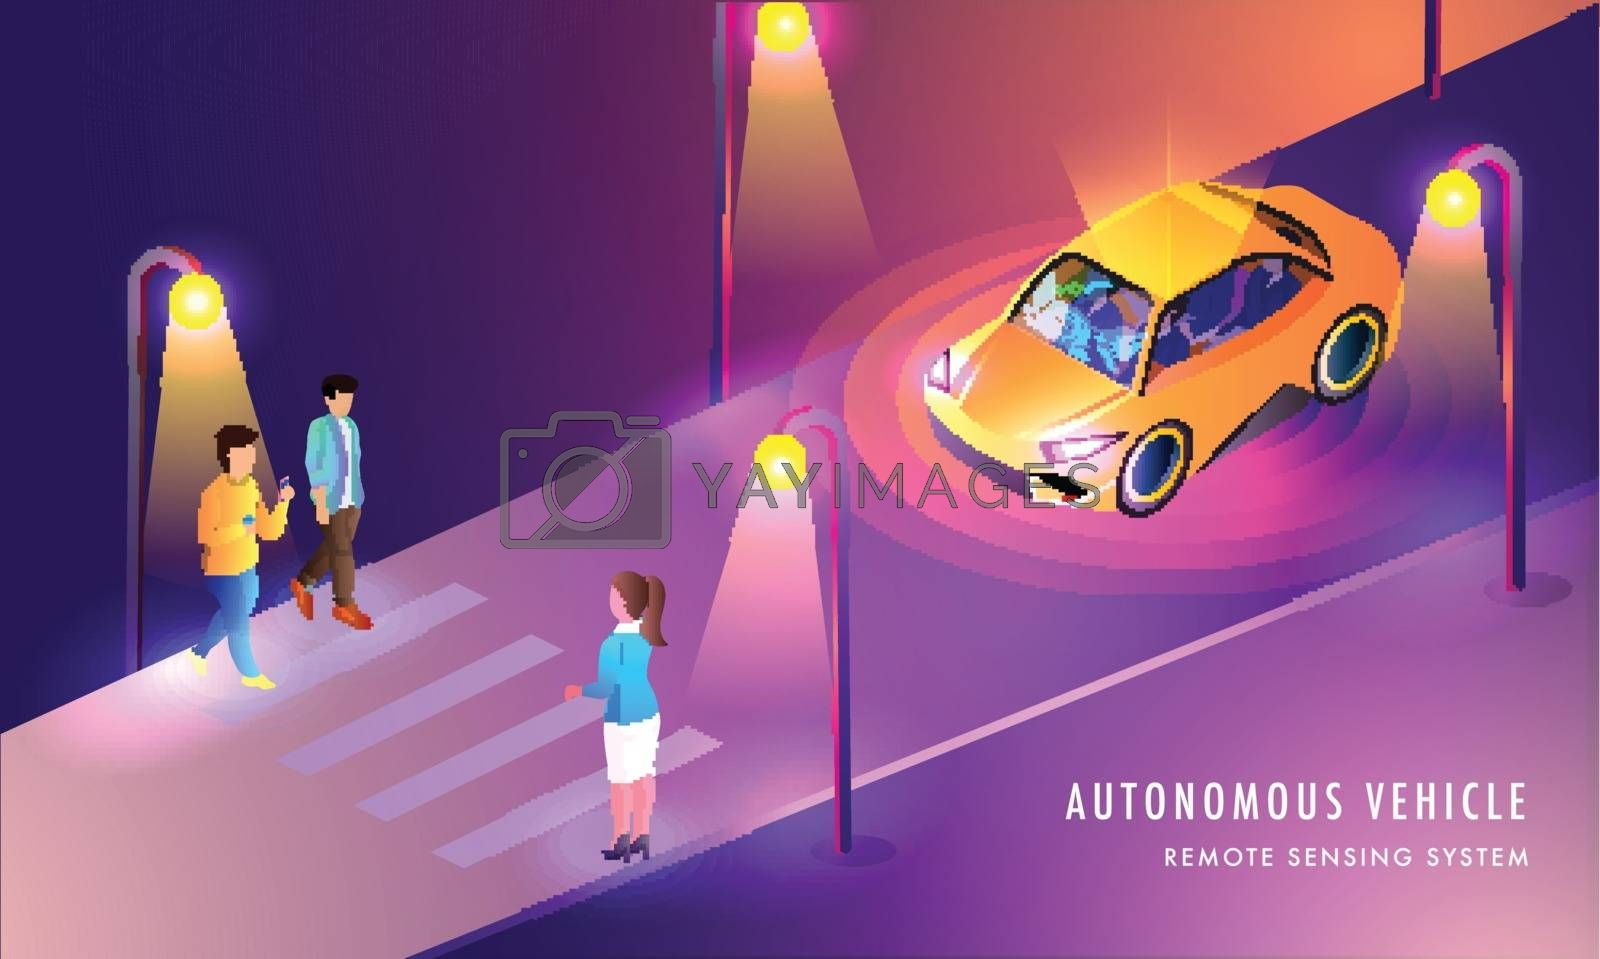 Royalty free image of Autonomous Vehicle, Remote Sensing System based web template des by aispl